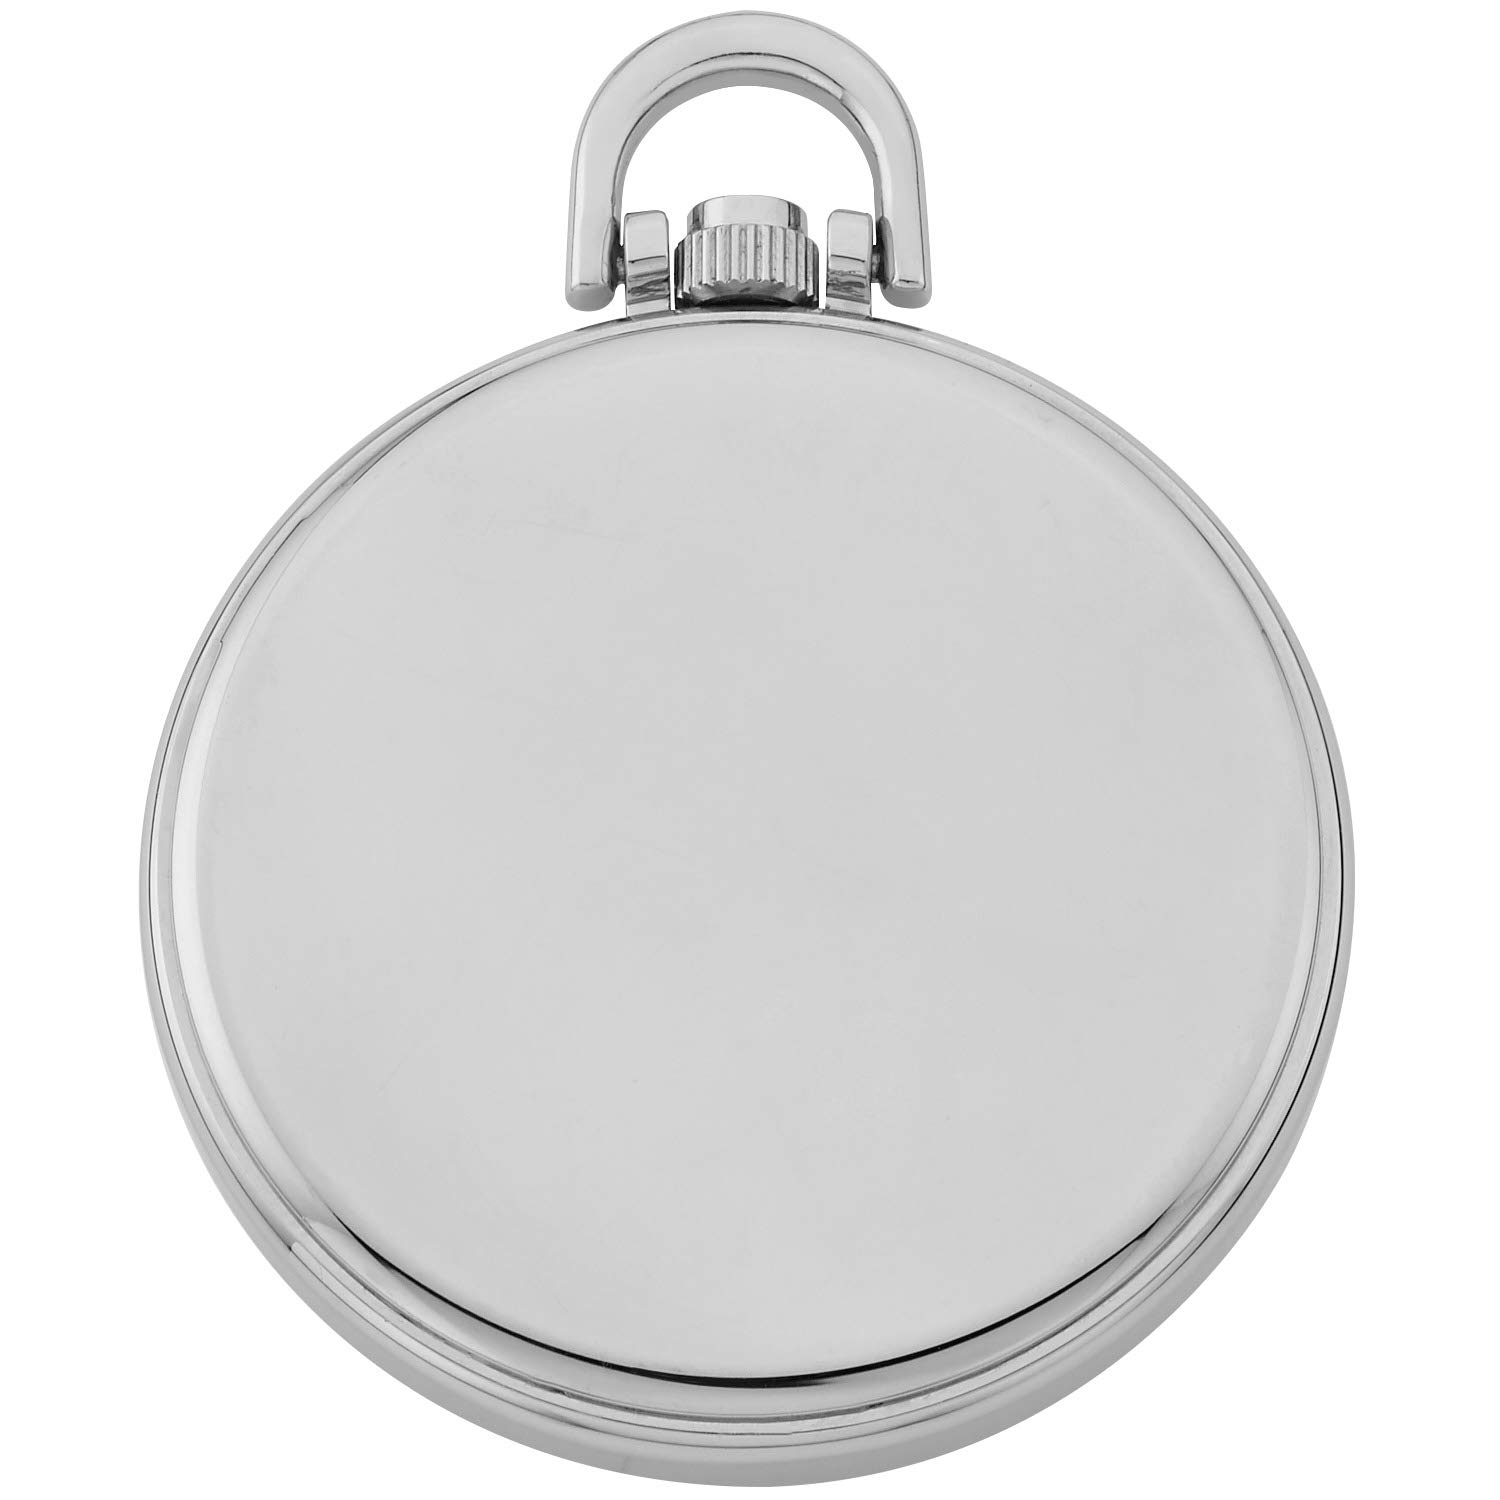 Gotham Men's Stainless Steel Analog Quartz Date Railroad Style Pocket Watch # GWC14107S by Gotham (Image #4)